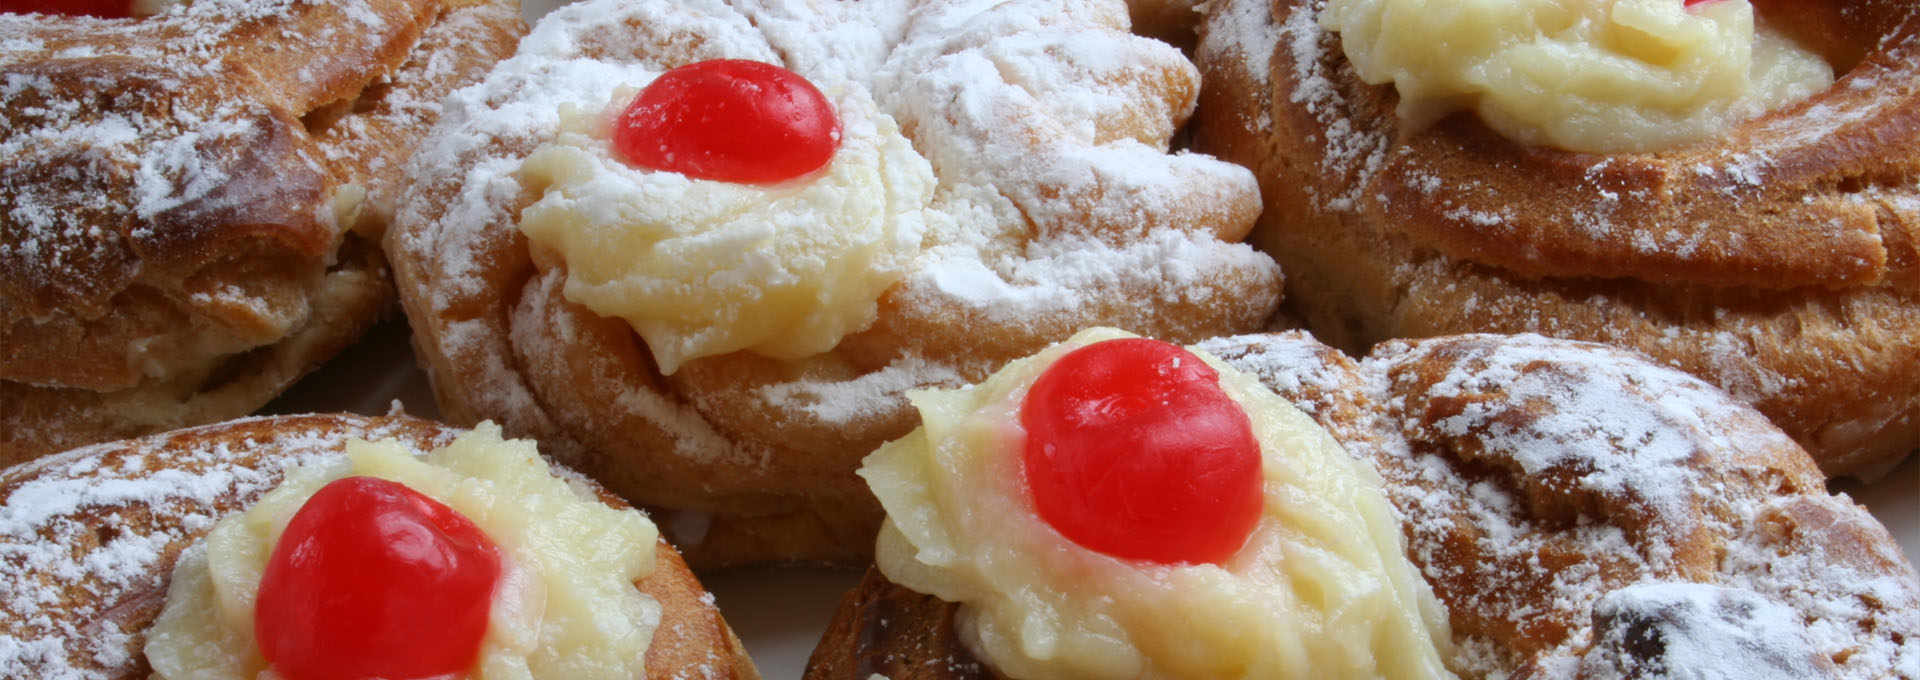 Zeppole – Italy's Traditional Dough Balls